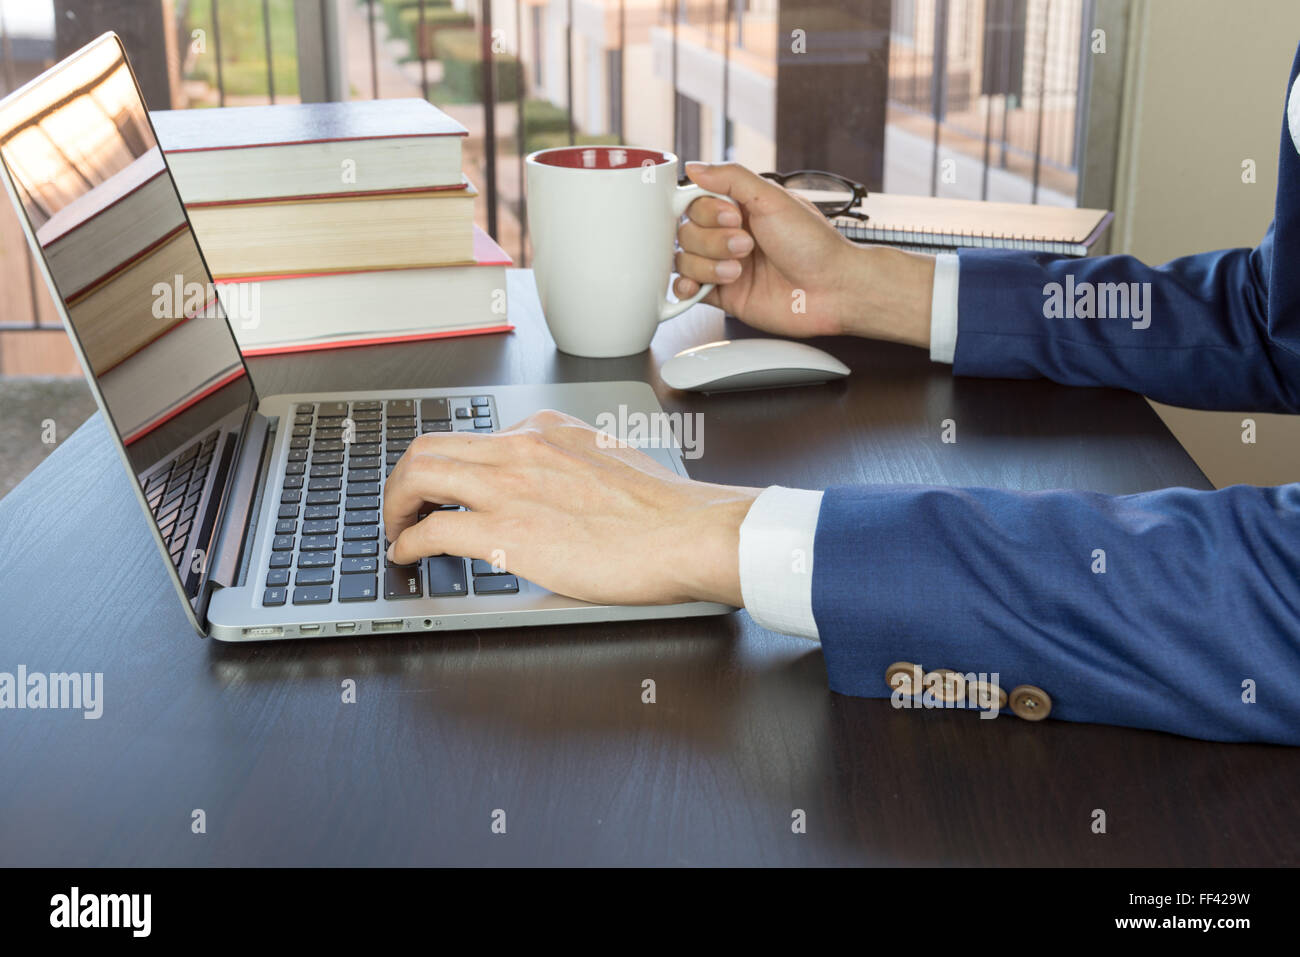 man in suit working in office desk, grabing cup of coffee Stock Photo